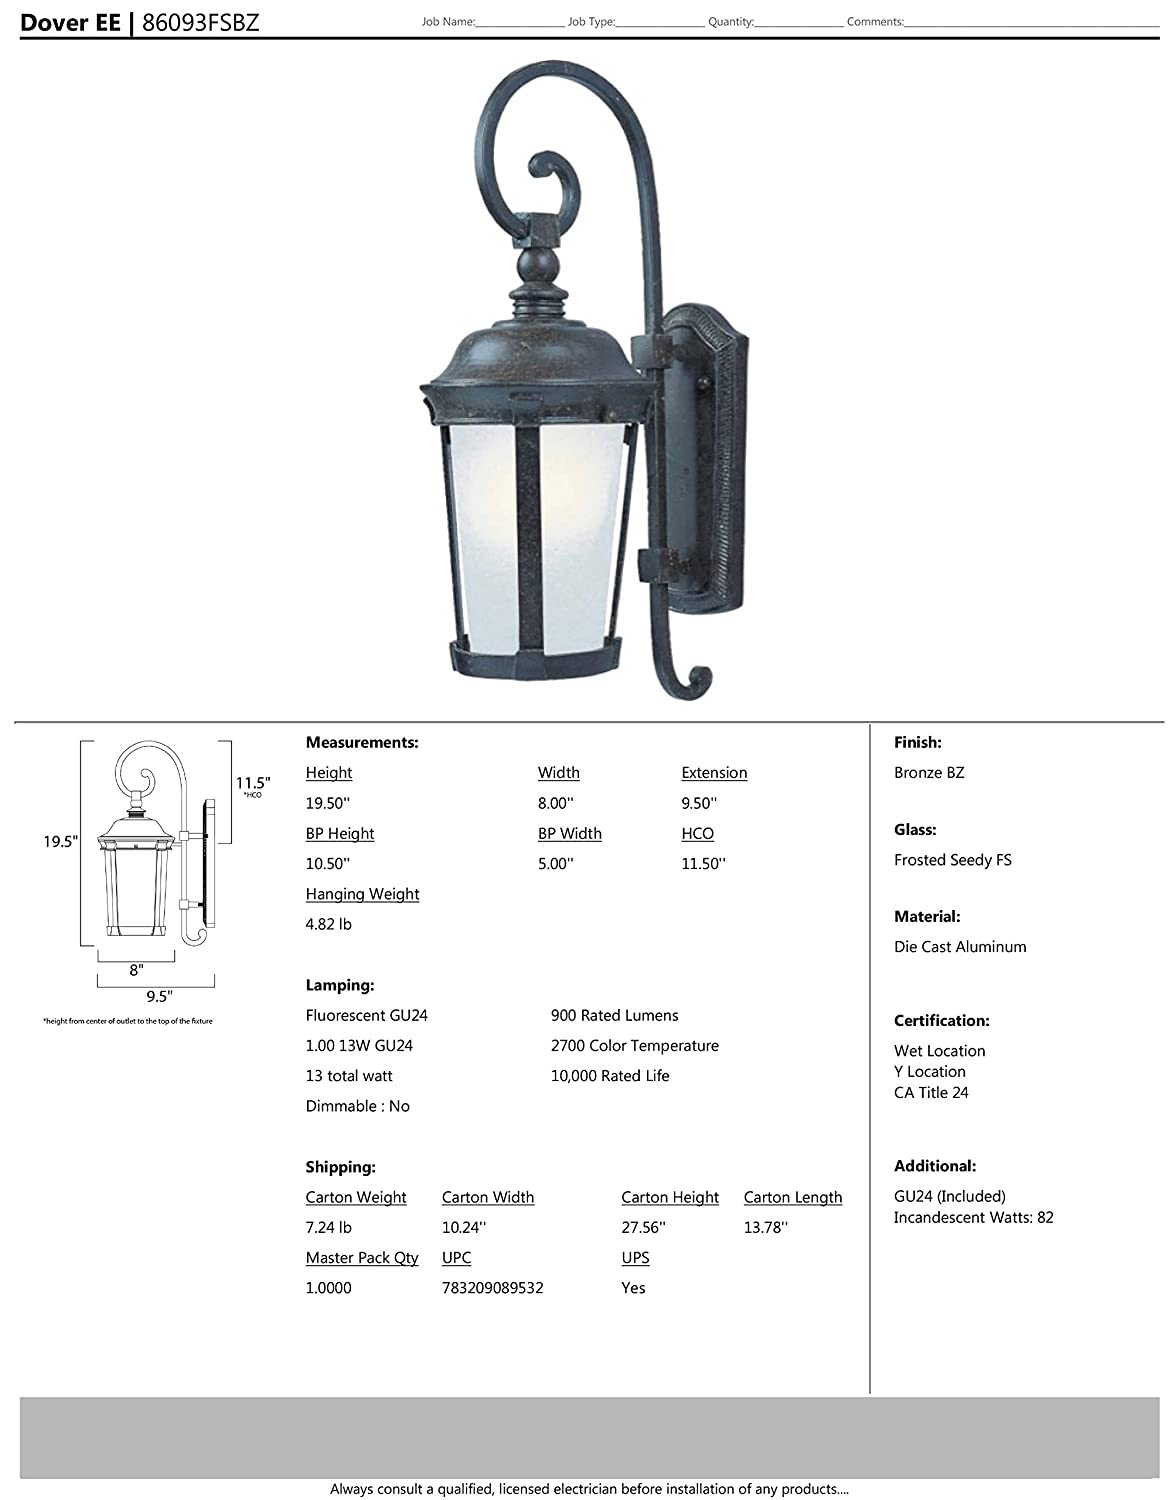 GU24 Fluorescent Fluorescent Bulb Bronze Finish Frosted Seedy Glass Glass Shade Material Standard Dimmable Maxim 86093FSBZ Dover EE 1-Light Outdoor Wall Lantern 1344 Rated Lumens Dry Safety Rating 60W Max.